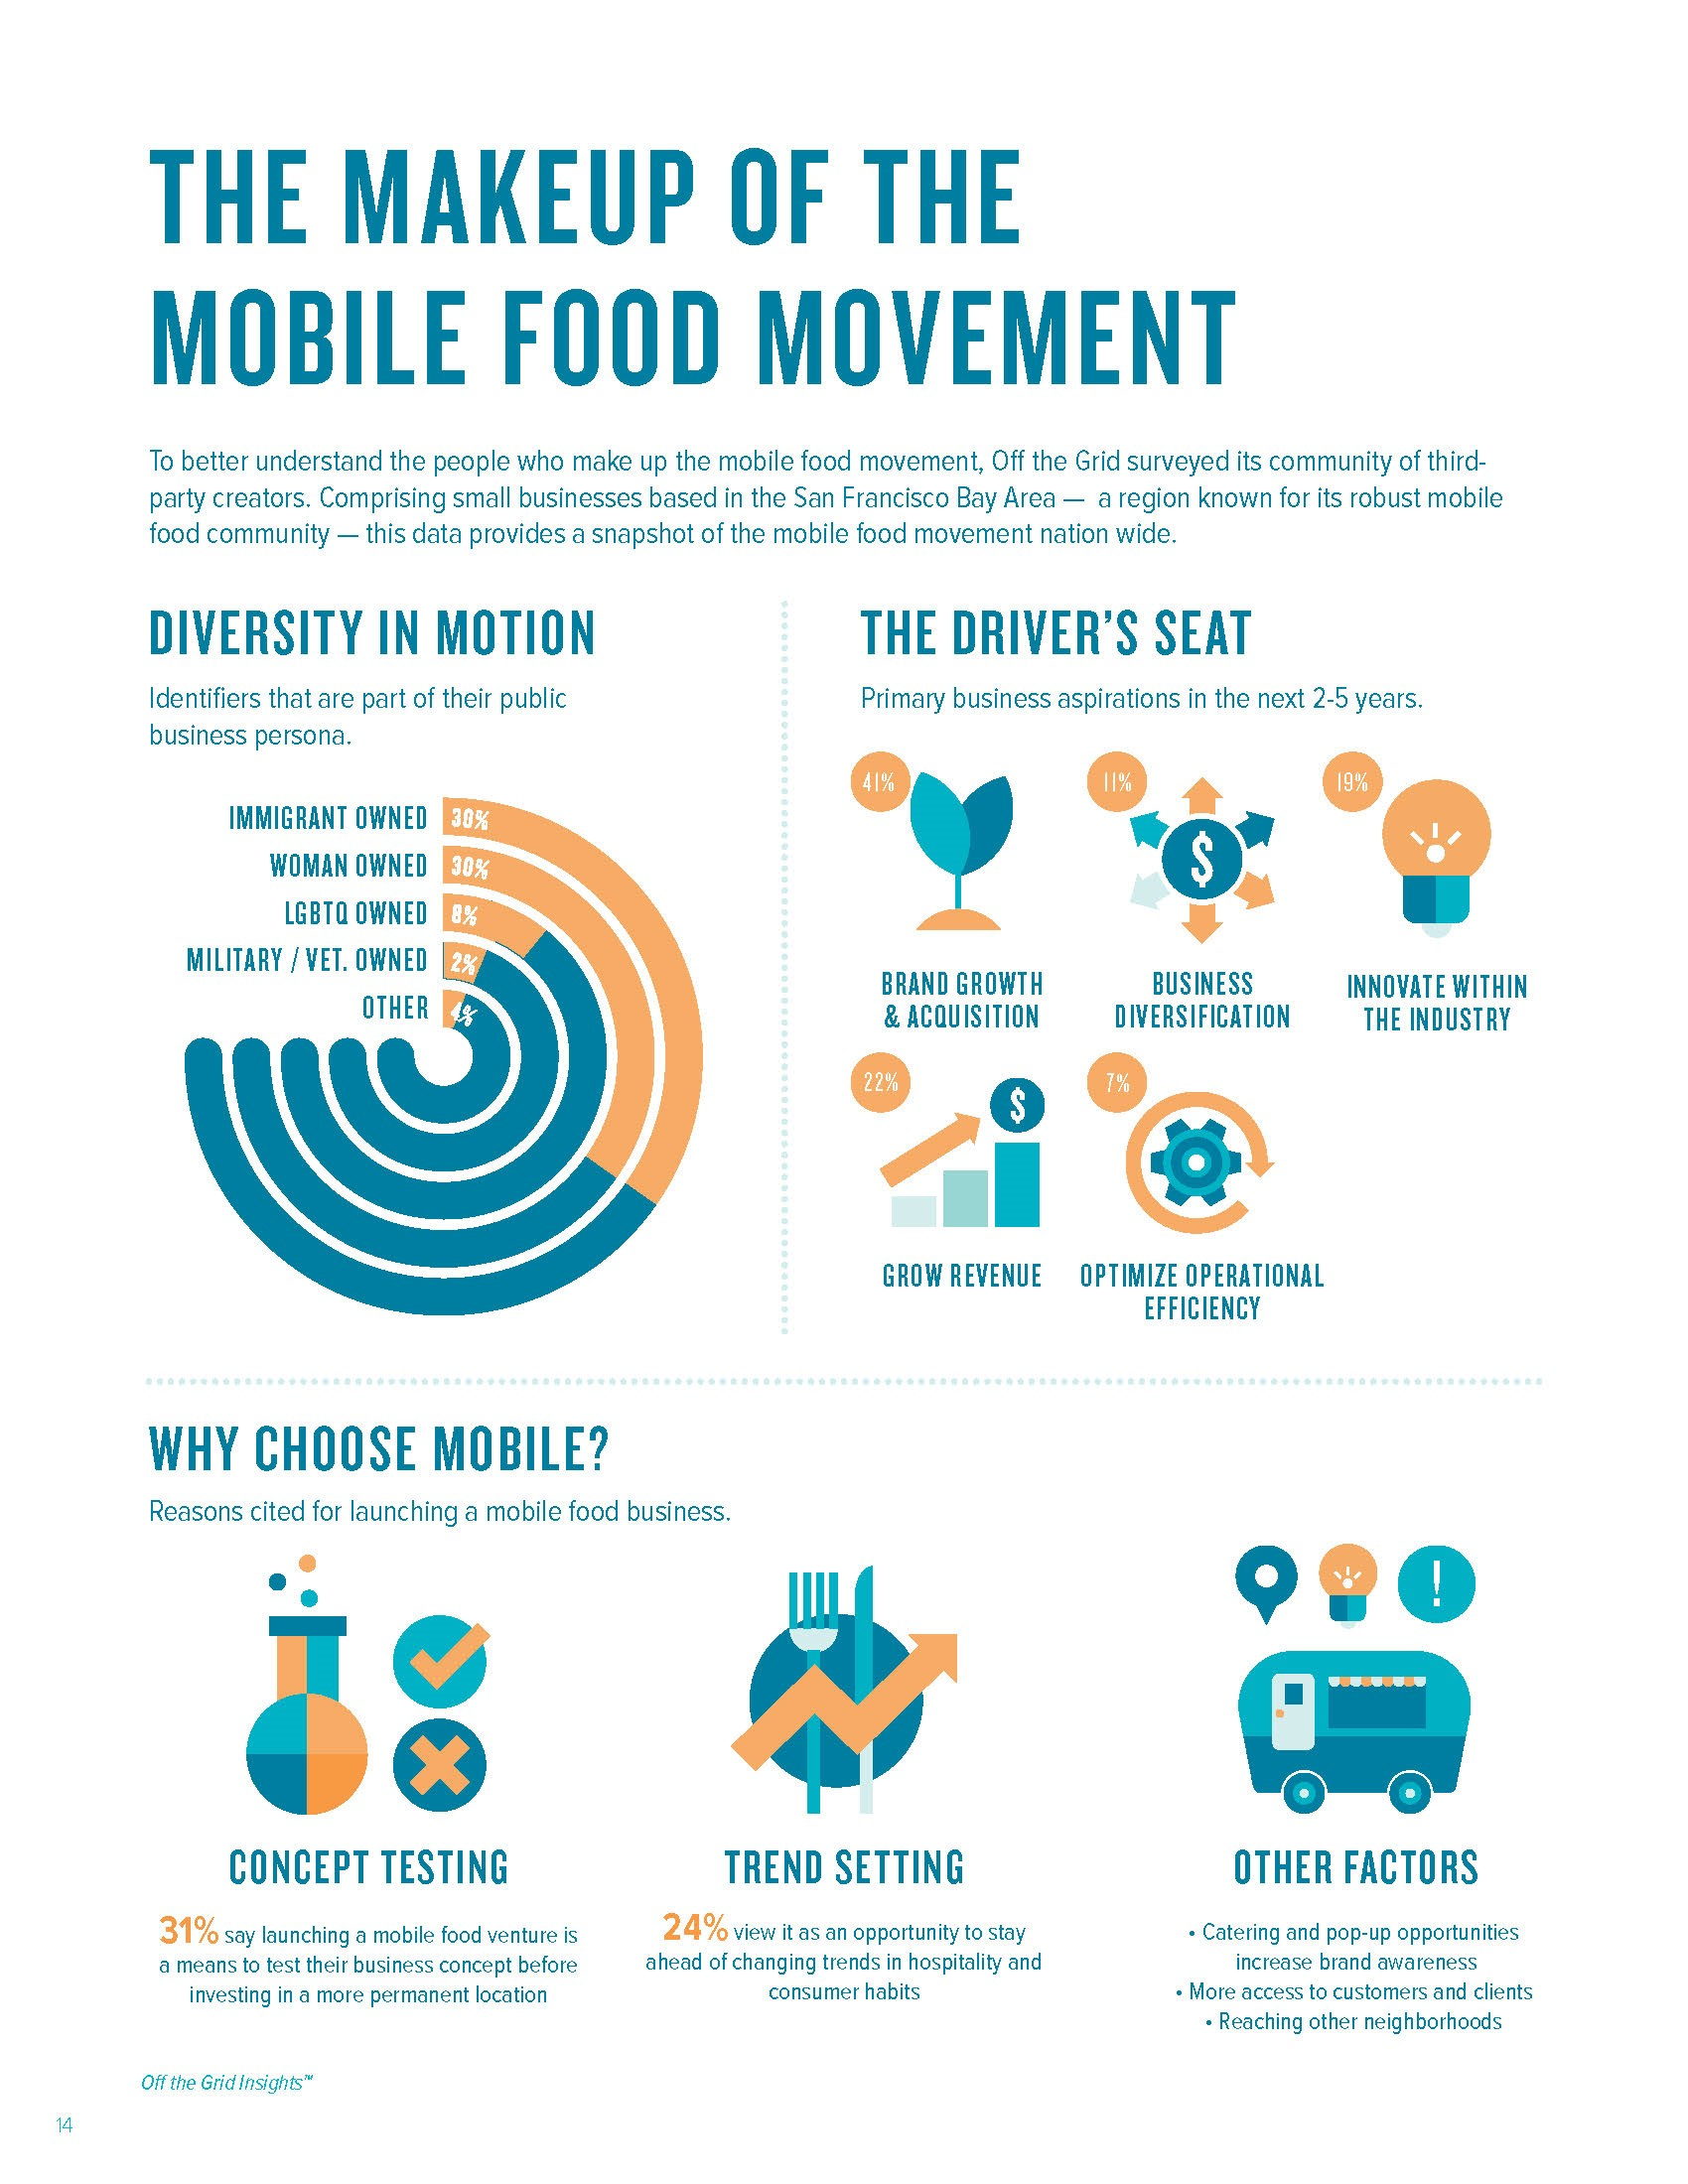 Mobile food's expansion set to continue: Trends and insight